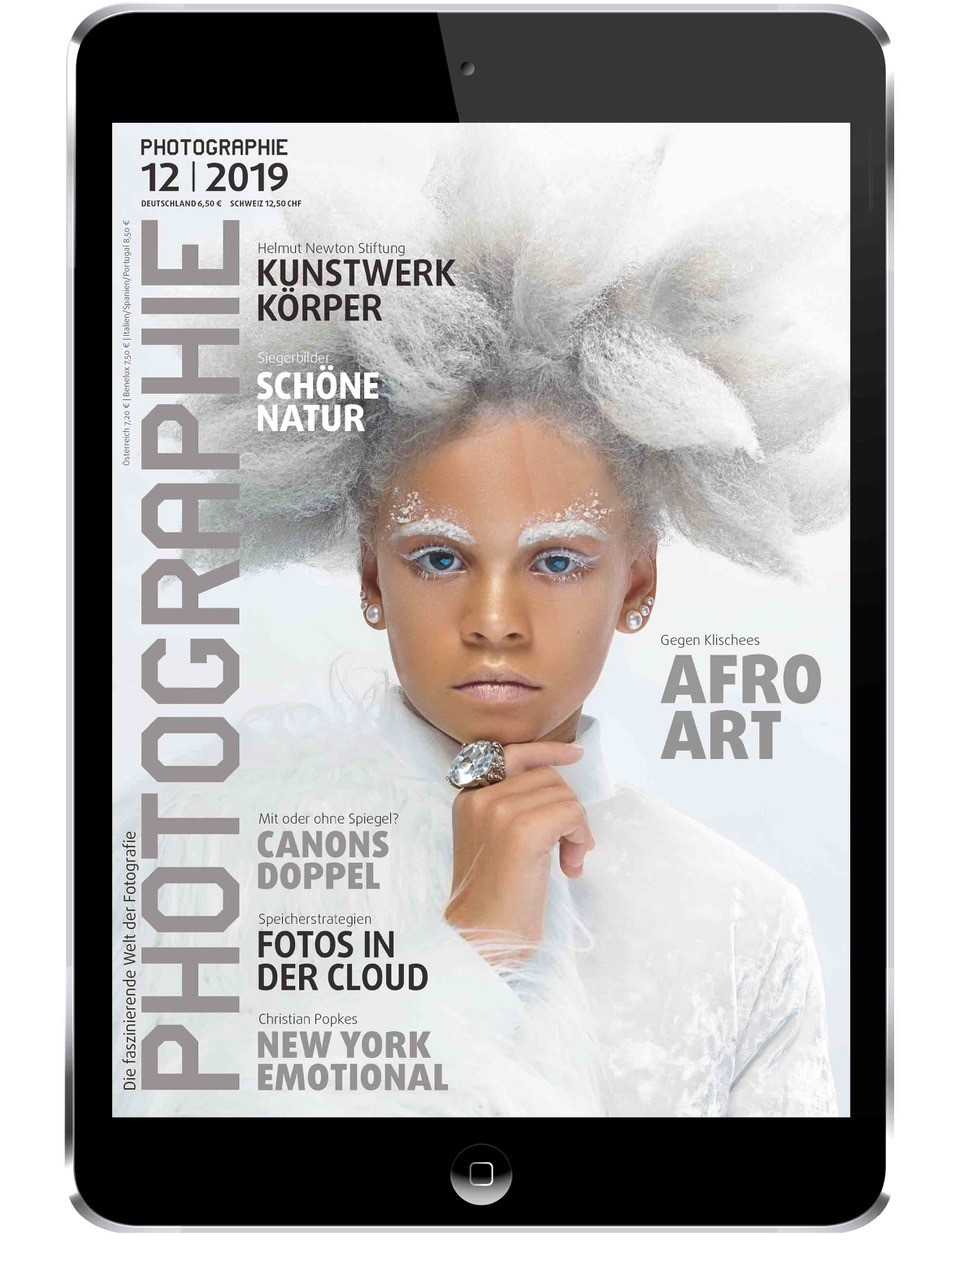 Cover 12 2019 Photographie